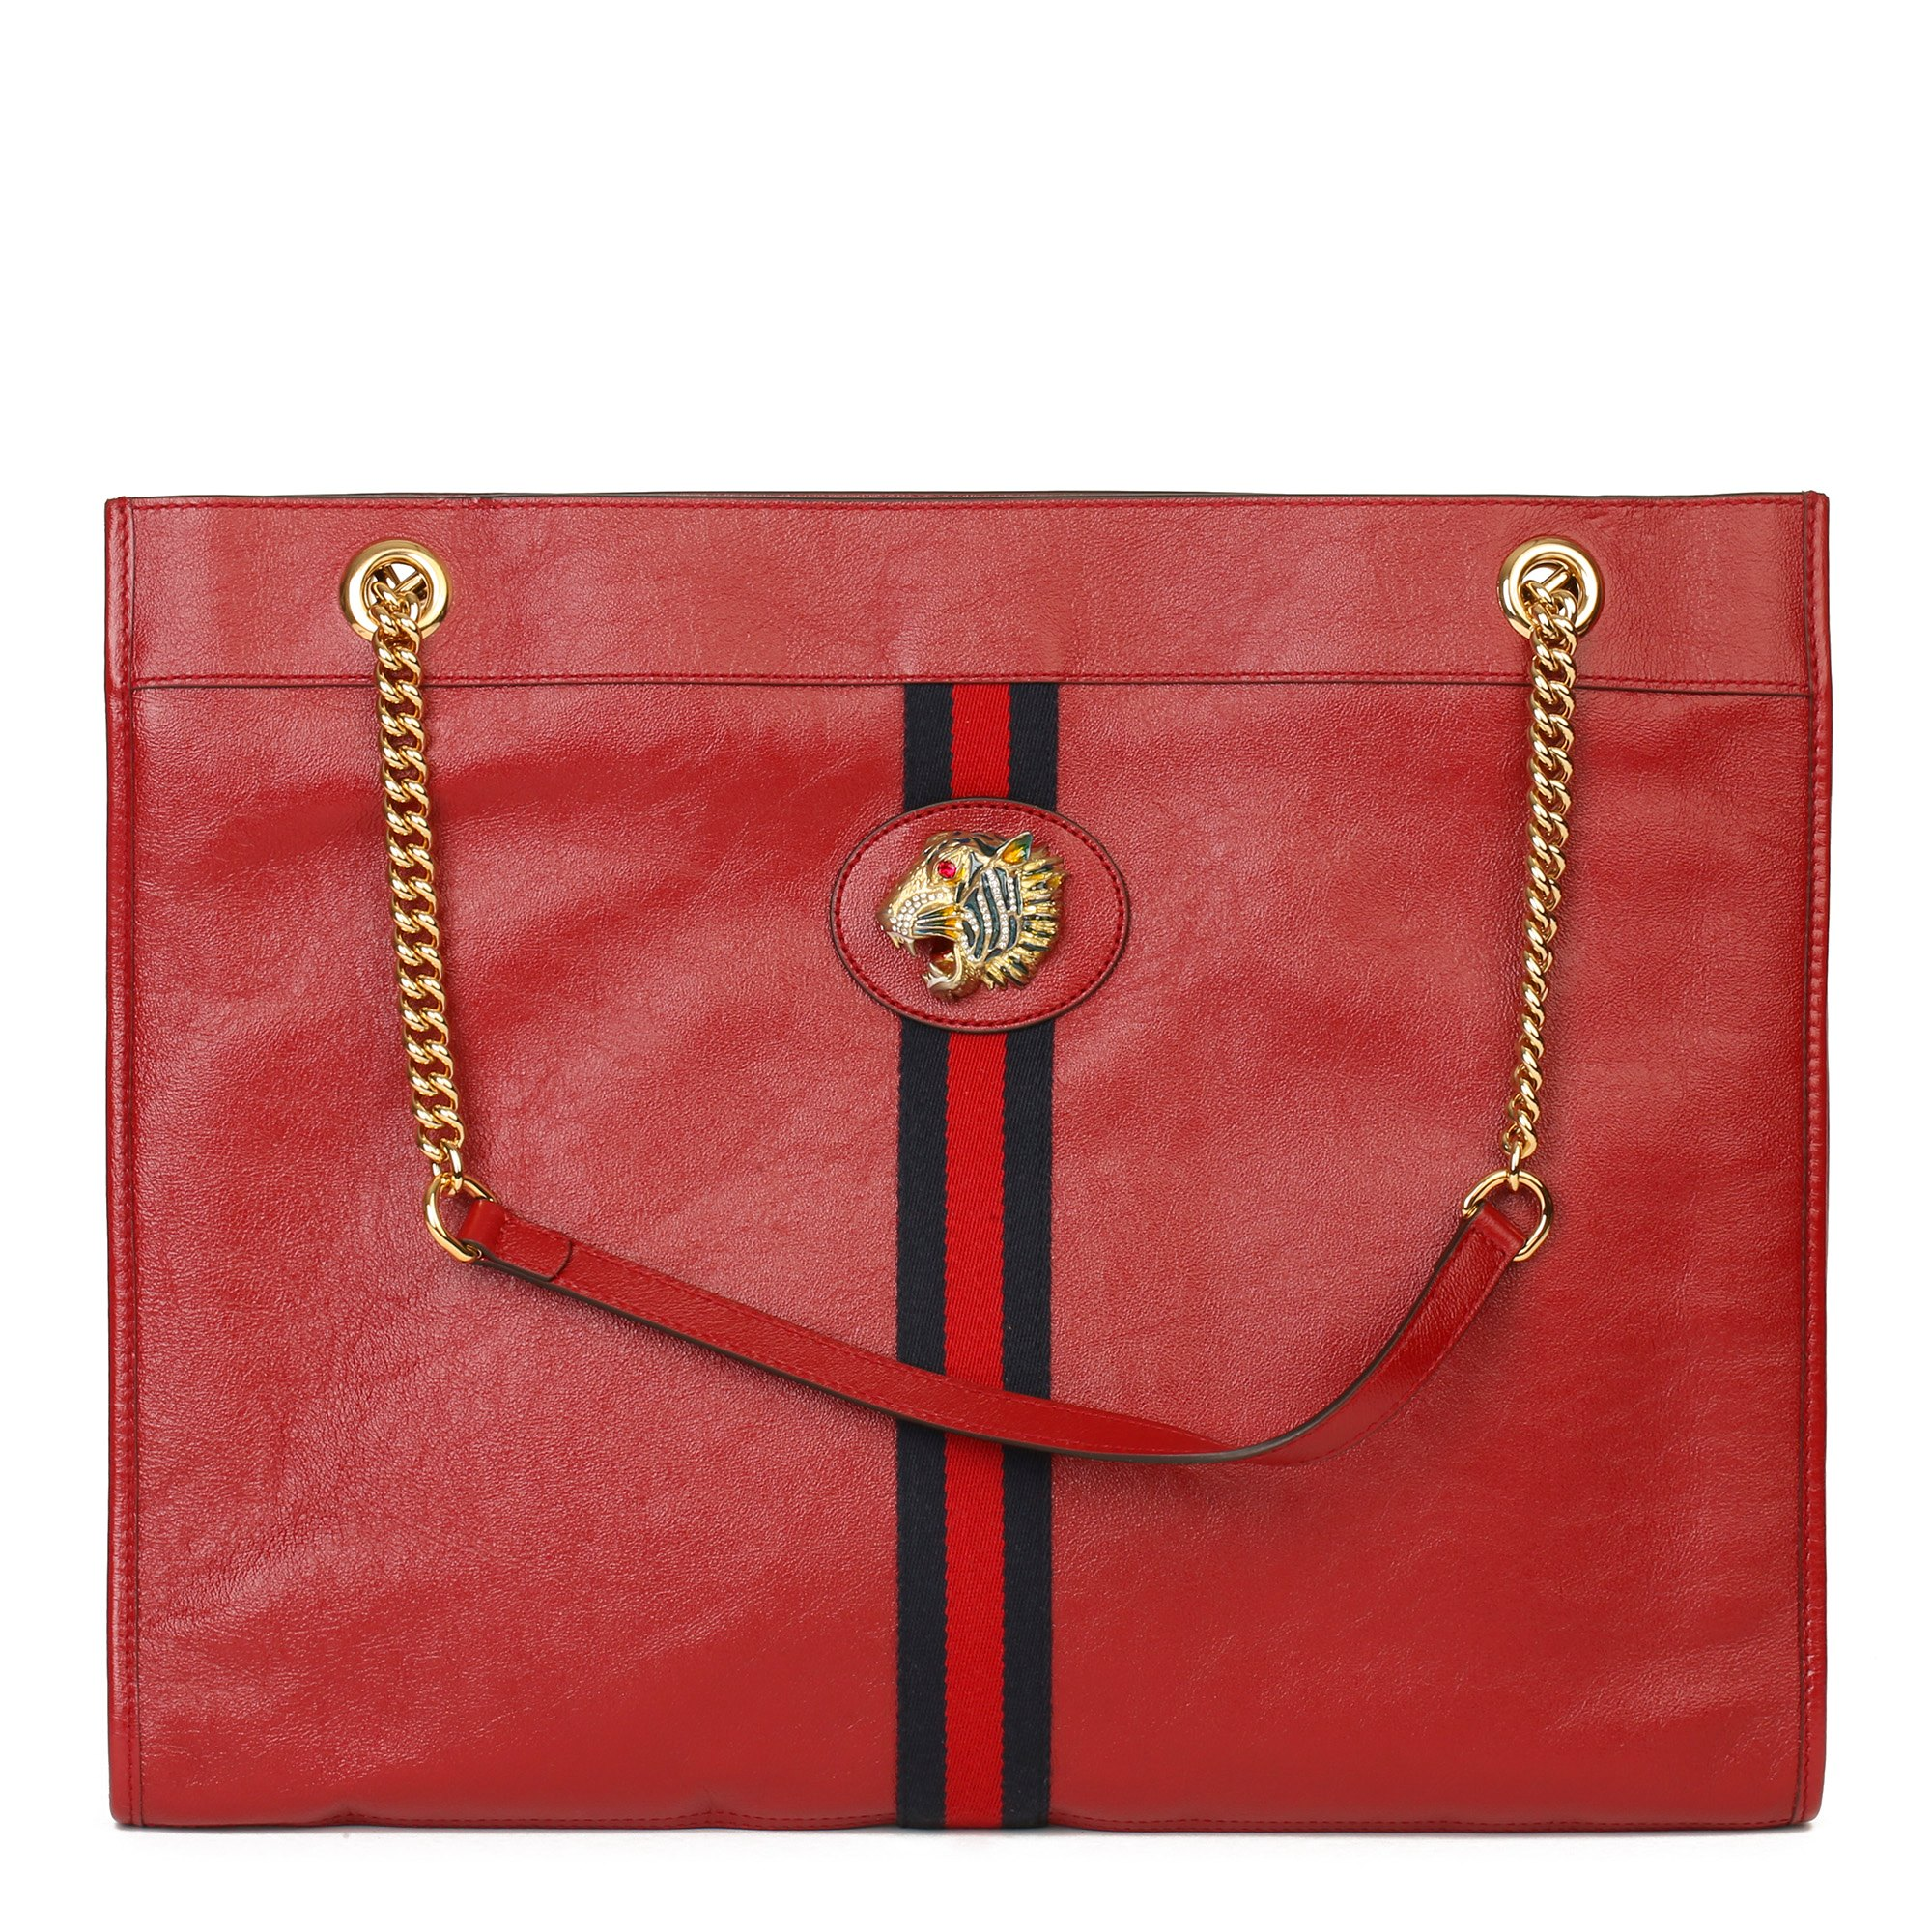 Gucci Red Aged Calfskin Leather Web Large Rajah Tote